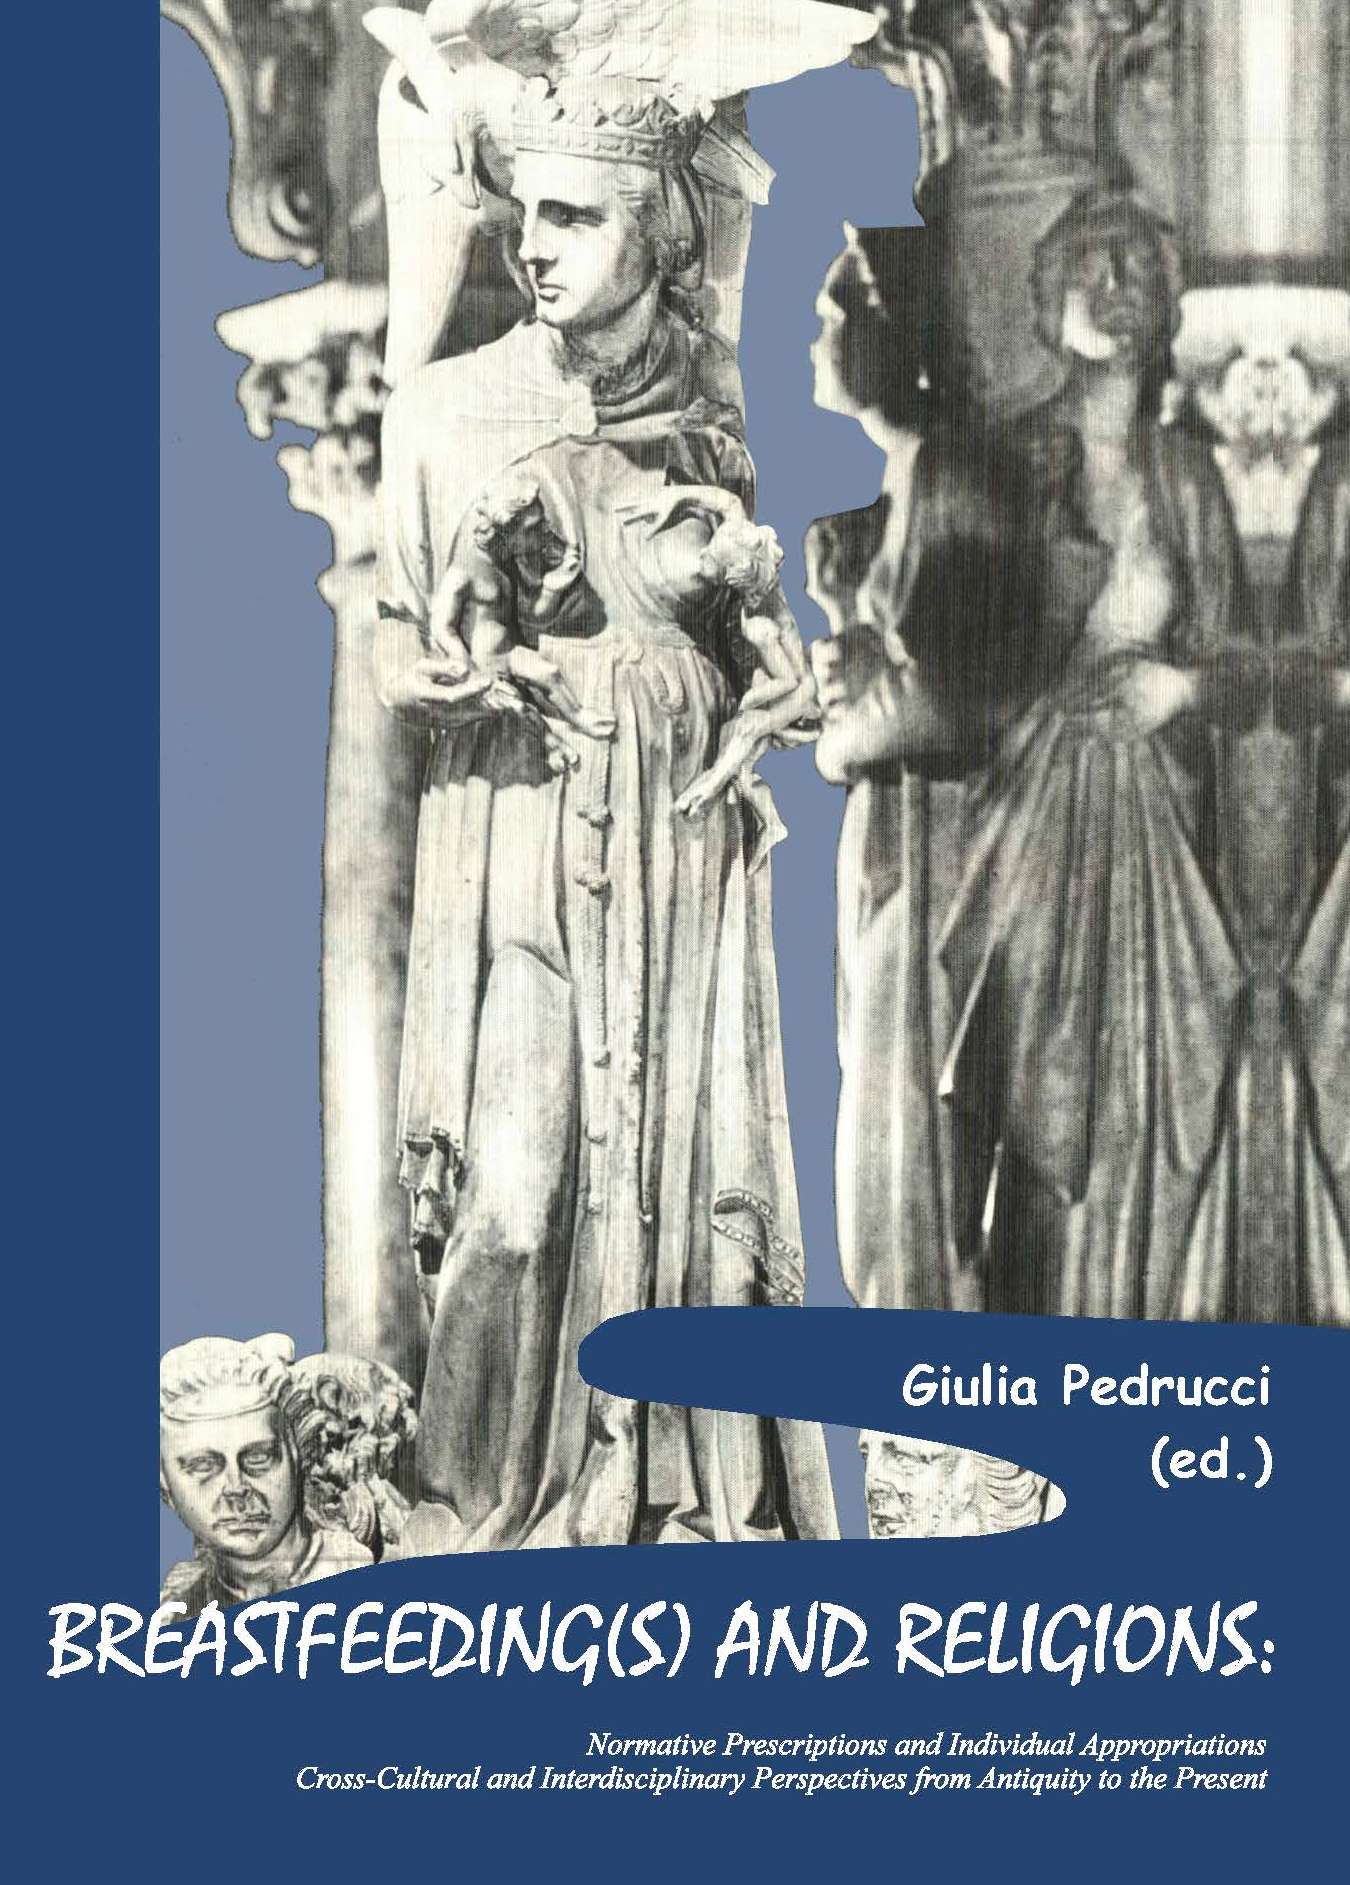 BREASTFEEDING(S) AND RELIGIONS: